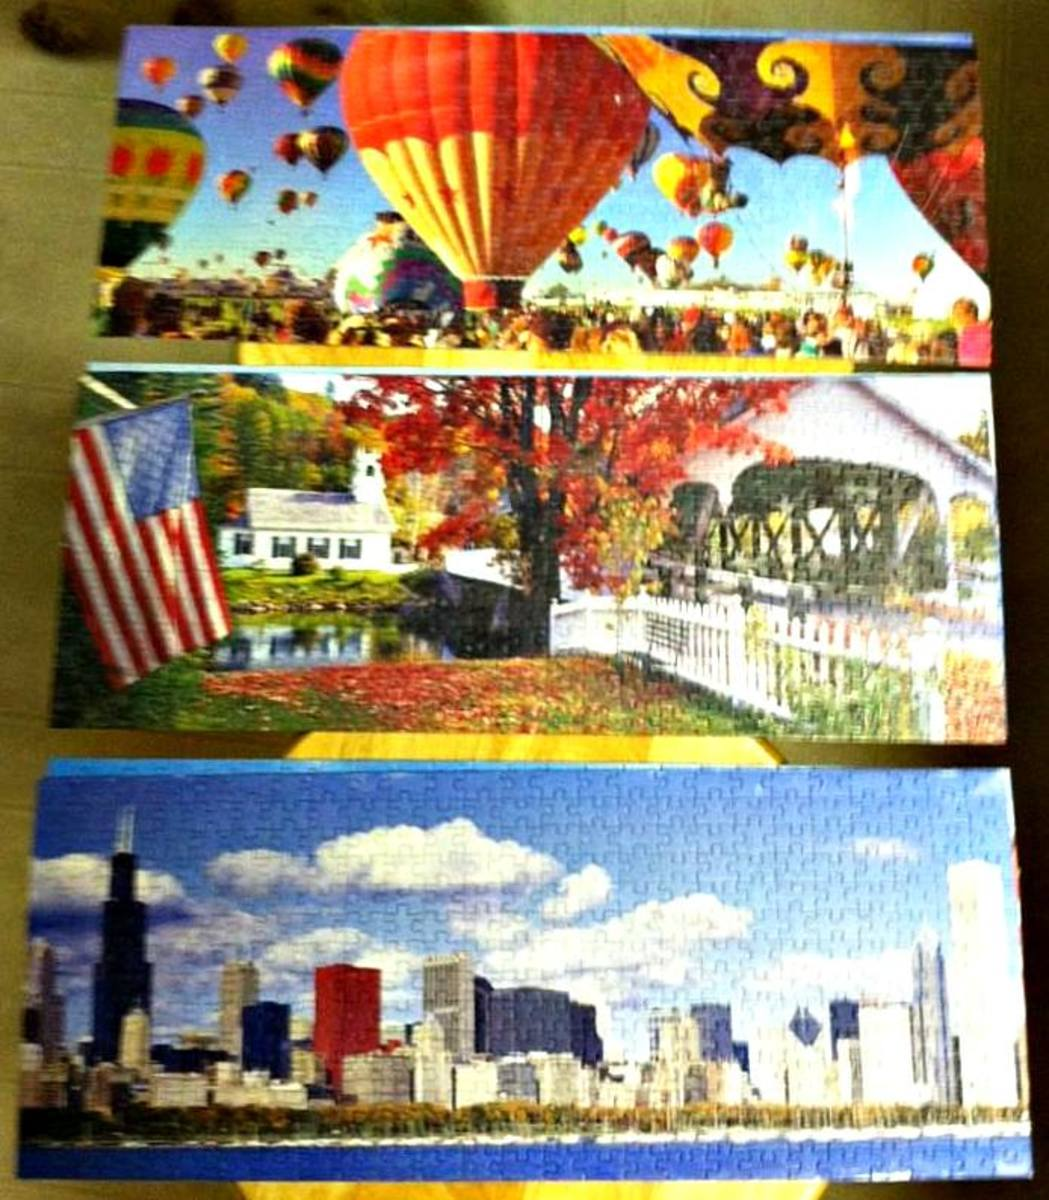 Jigsaw Puzzles are great fun when you need a vacation but are broke because you can see the world from the comfort of you dining room or kitchen table when you are working on these remarkable creations